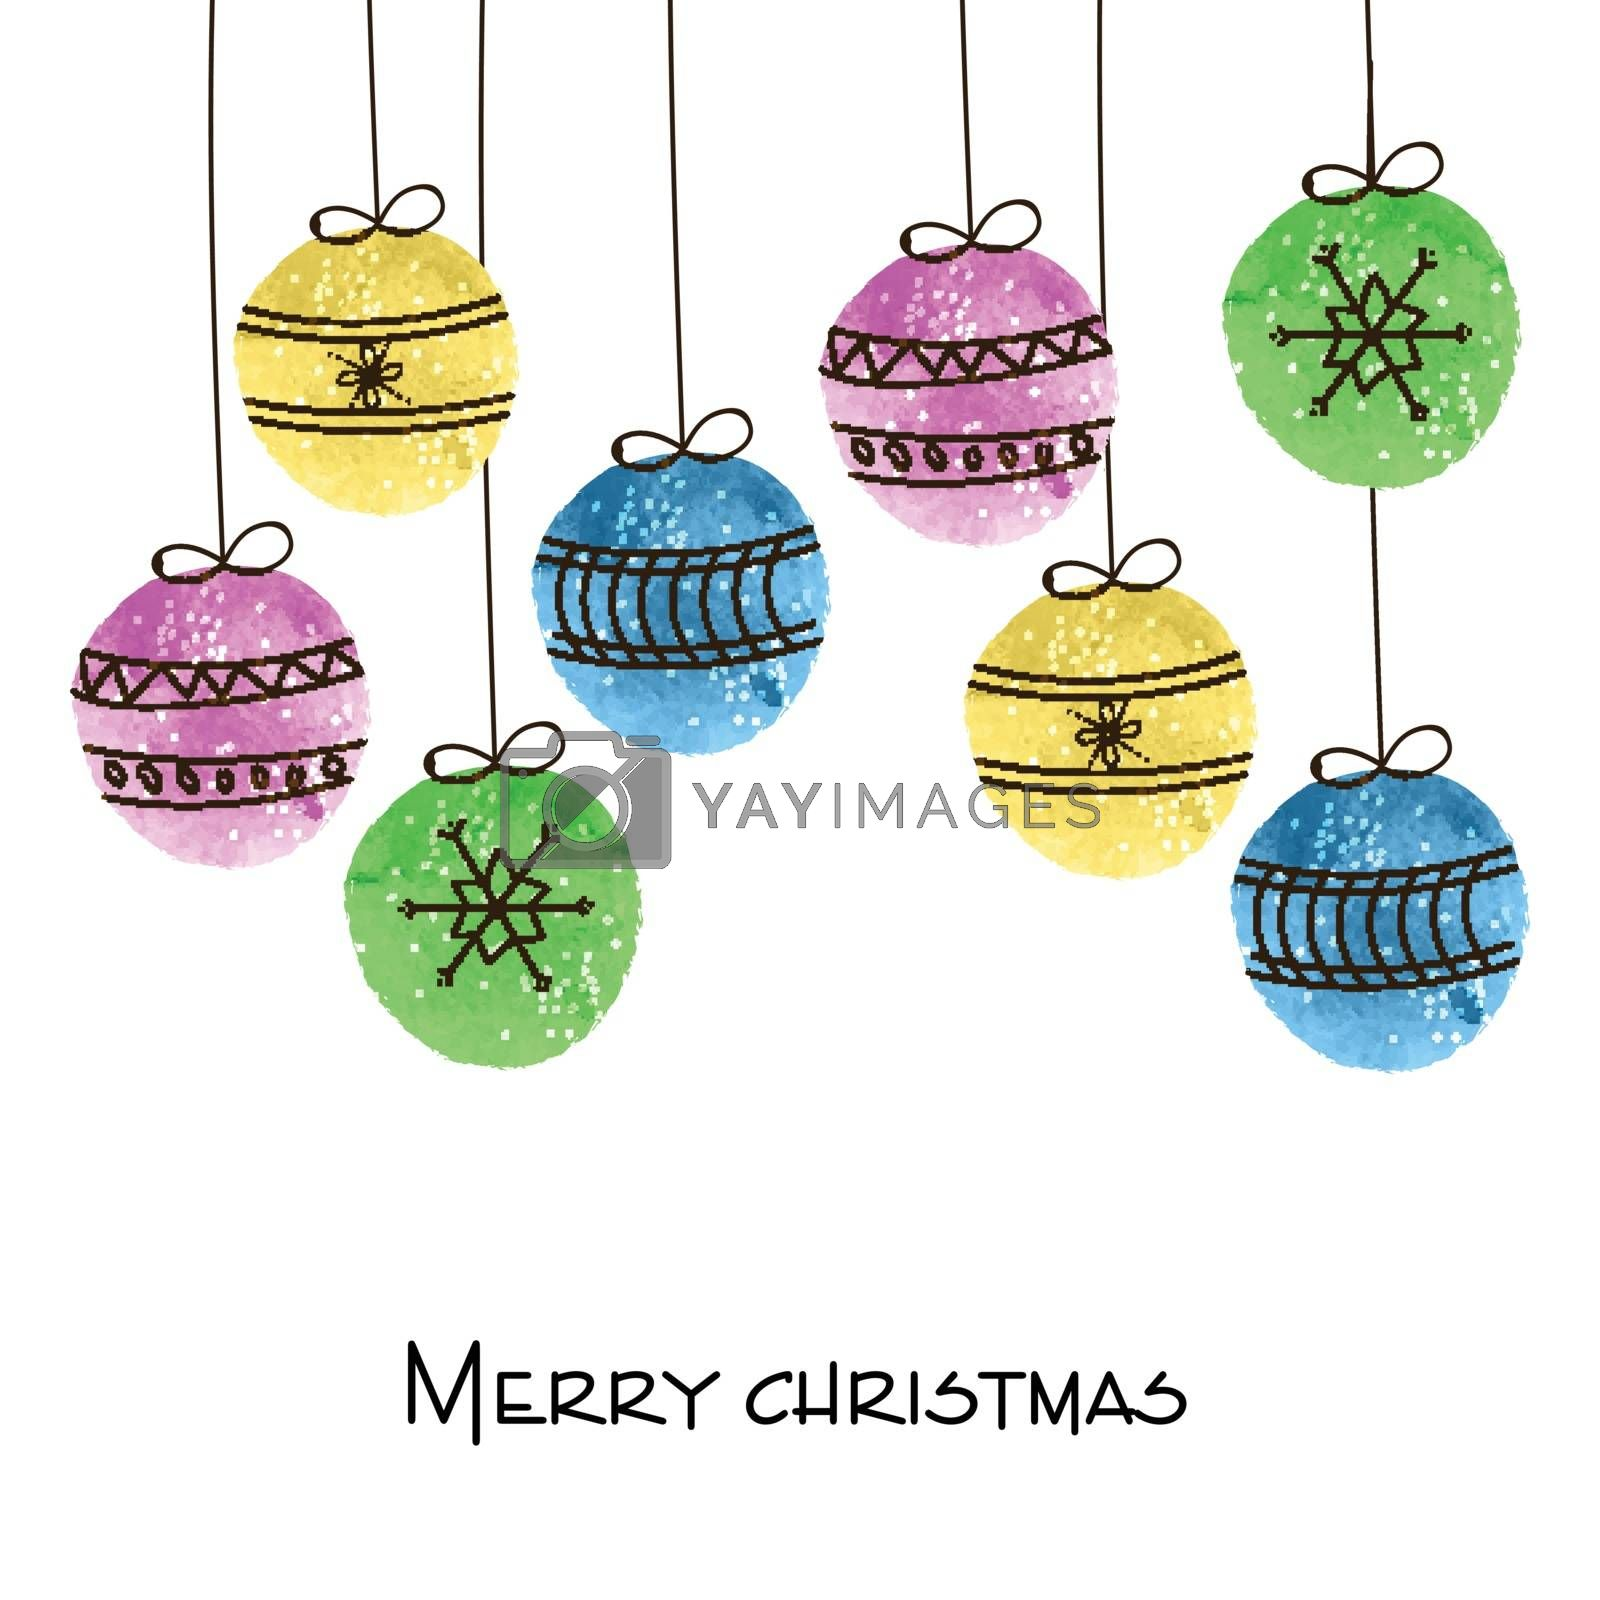 Elegant holiday background with colorful hanging xmas balls for Merry Christmas celebration.